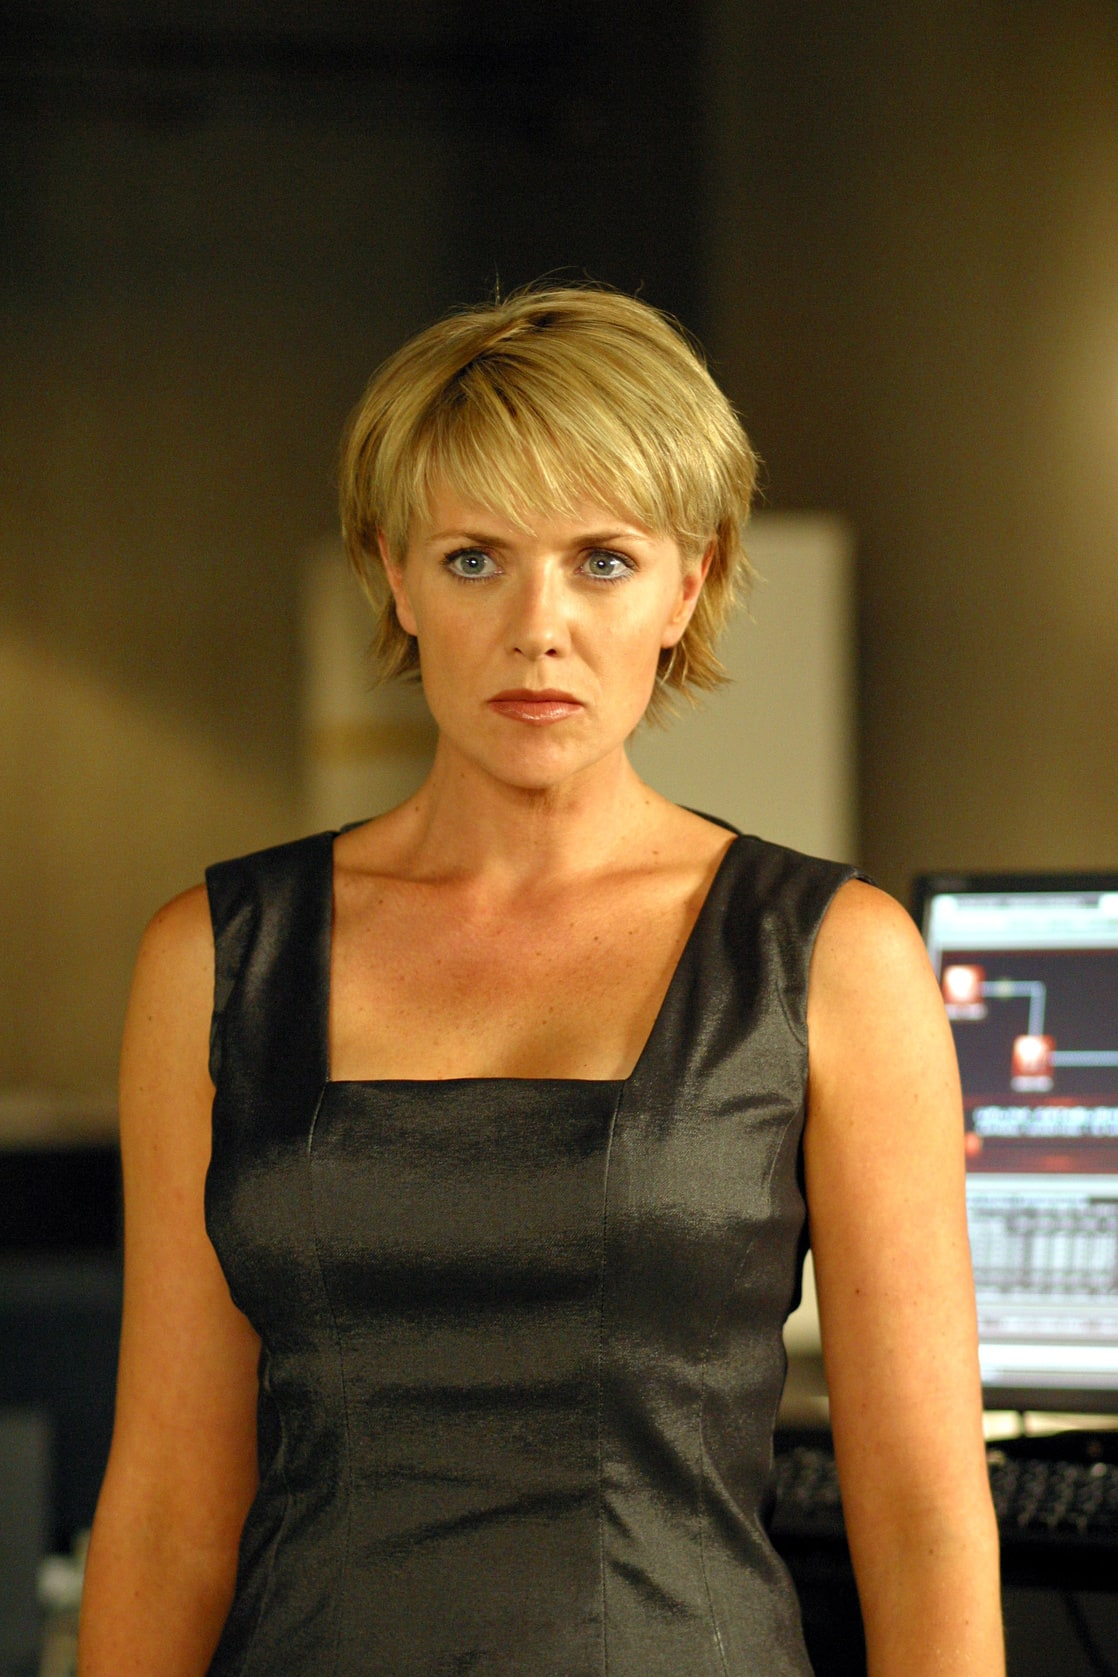 Amanda Tapping Hot picture of amanda tapping